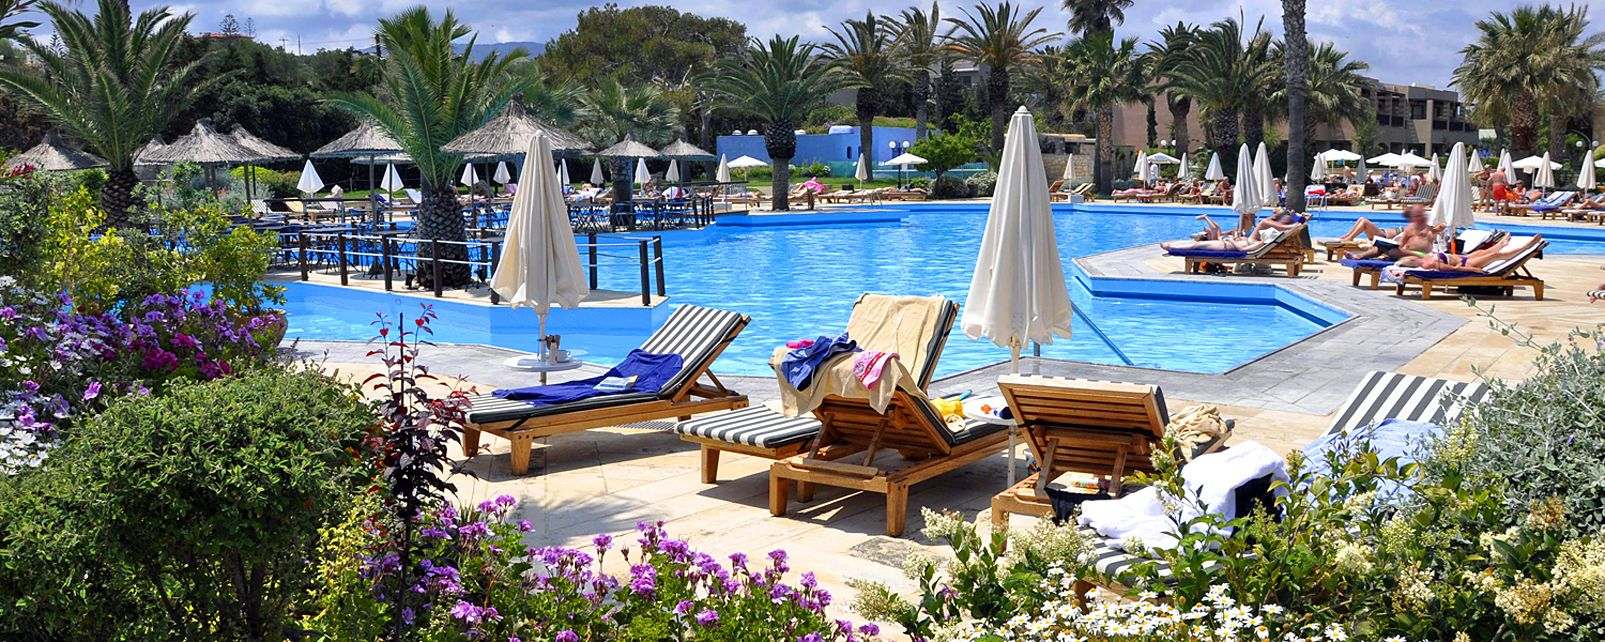 Hotel Aquila Rithymna Beach Resort